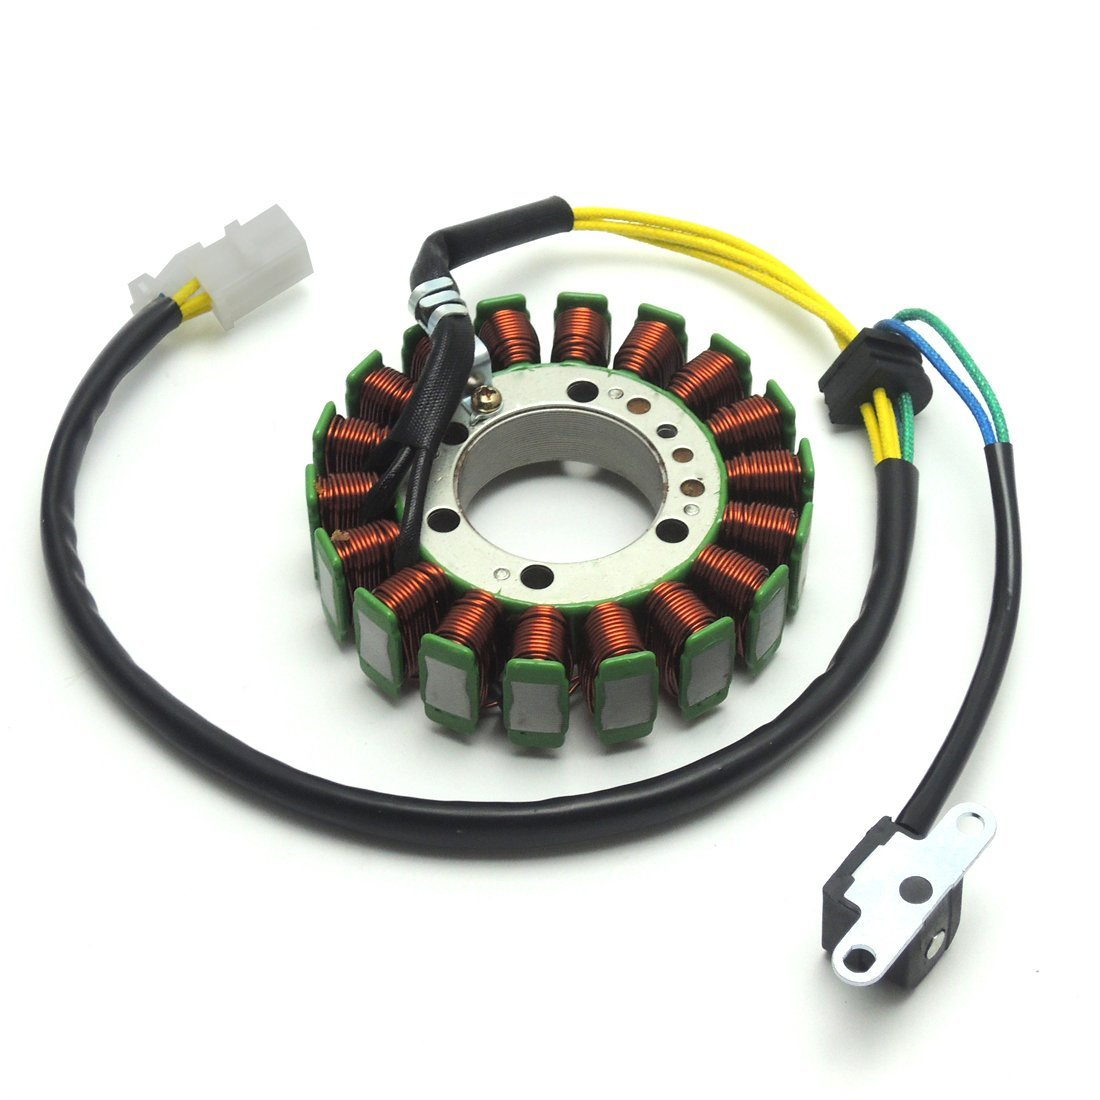 Cheap Yamaha Majesty 250 Find Deals On Line At Morphous 12 Volt Starter Wiring Diagram Get Quotations Motorcycle Stator Assy For Yp250 2000 2006 2007 Magneto Coil